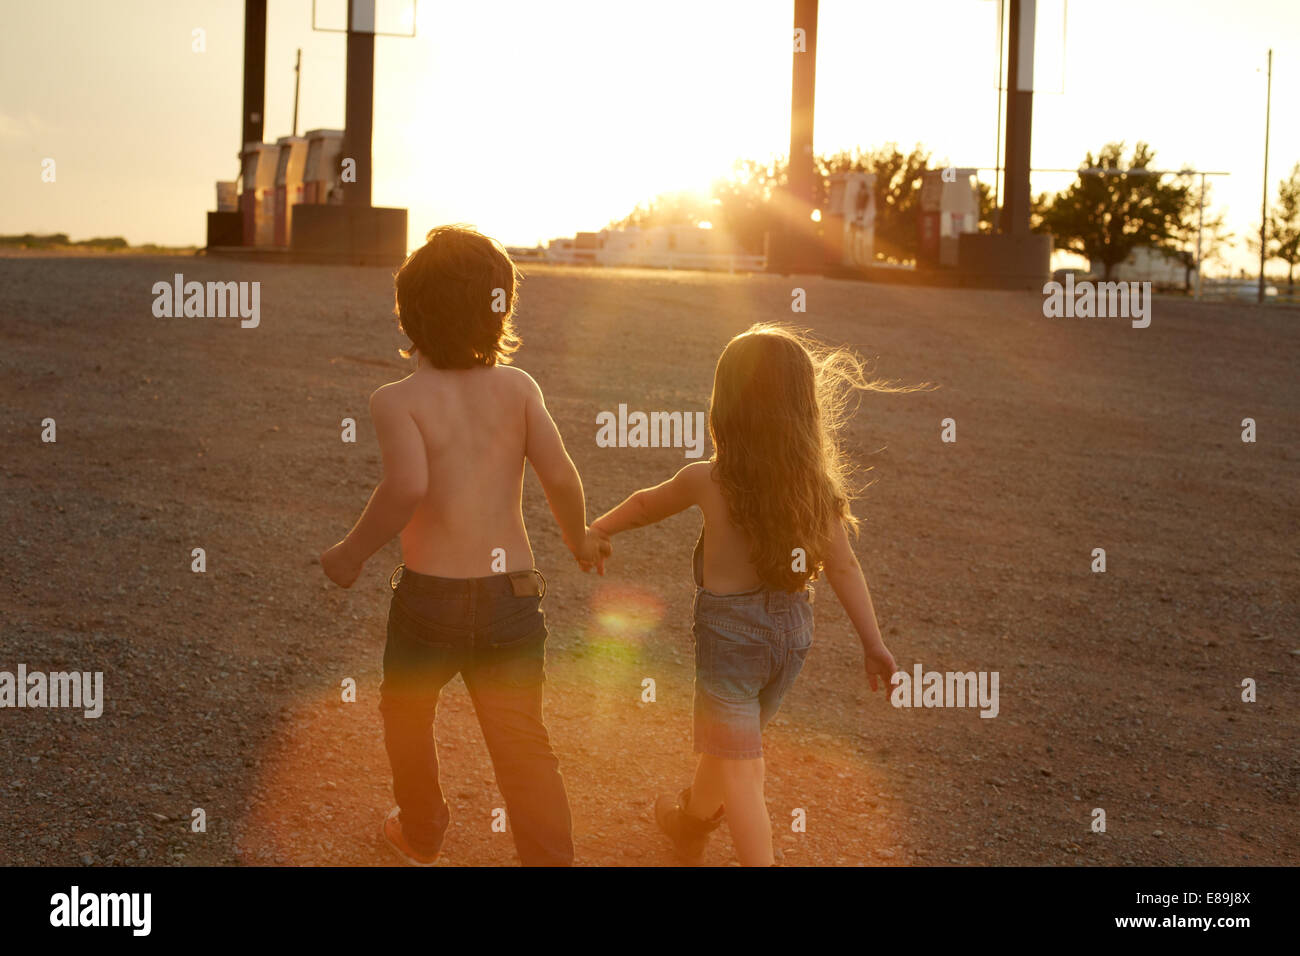 Siblings holding hands at gas station - Stock Image